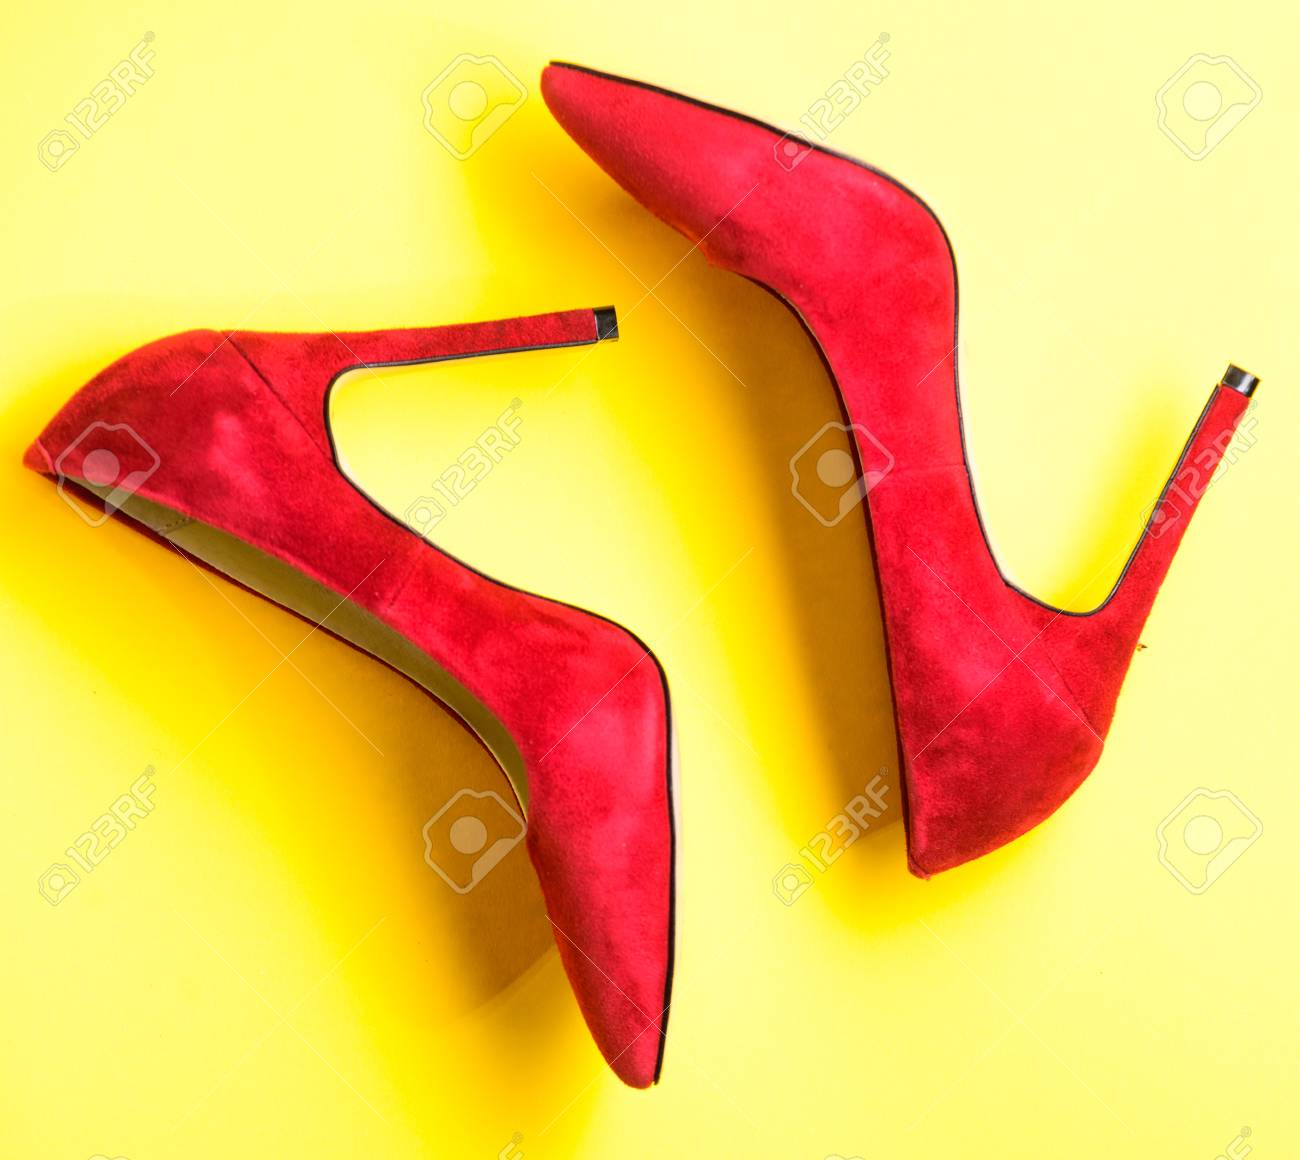 7c59d091470 Footwear with thin high heels, stiletto shoes, top view. Shoes..